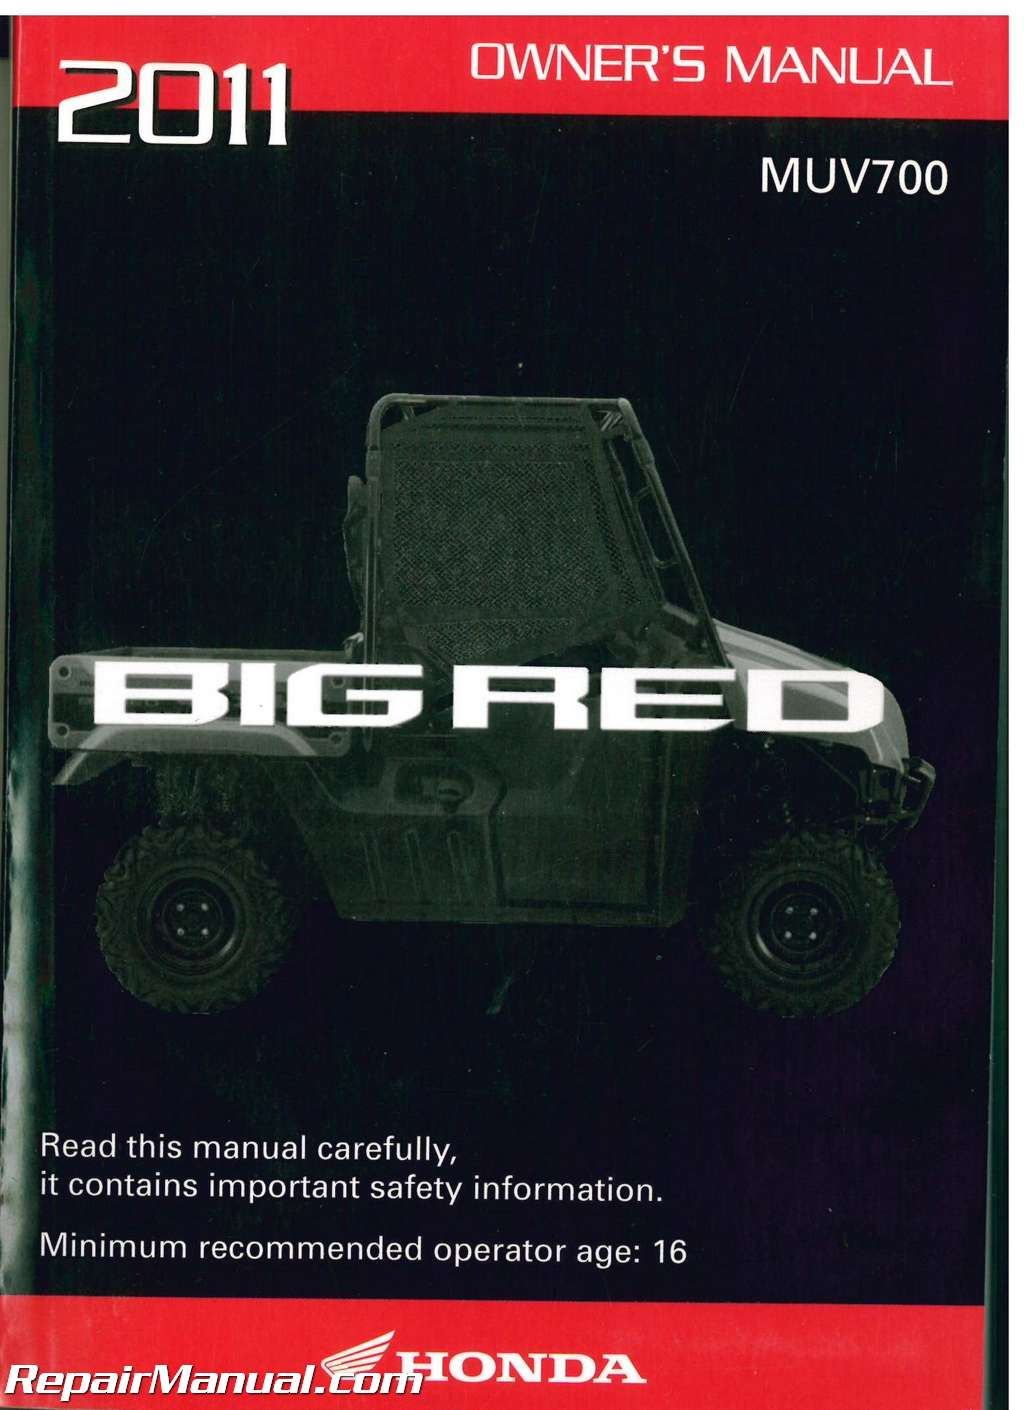 Honda Big Red Manuals